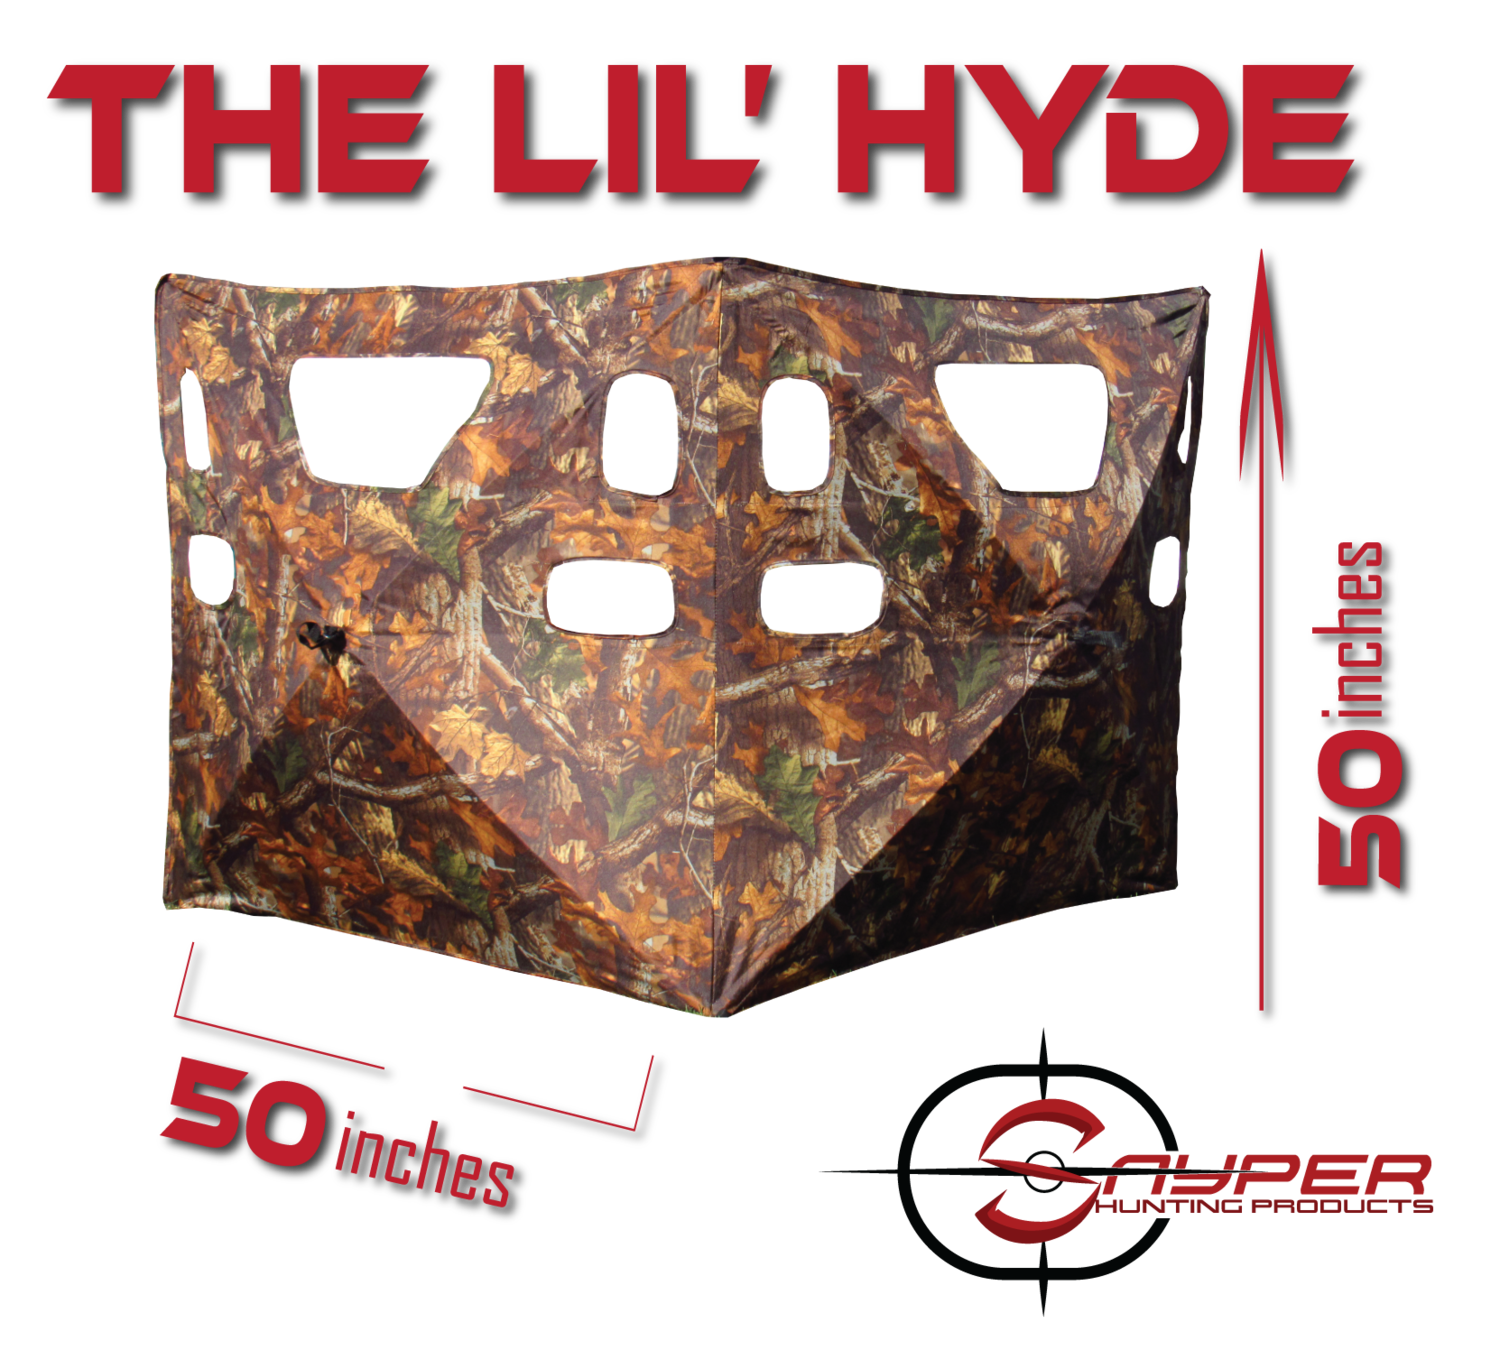 Lil' Hyde Blind